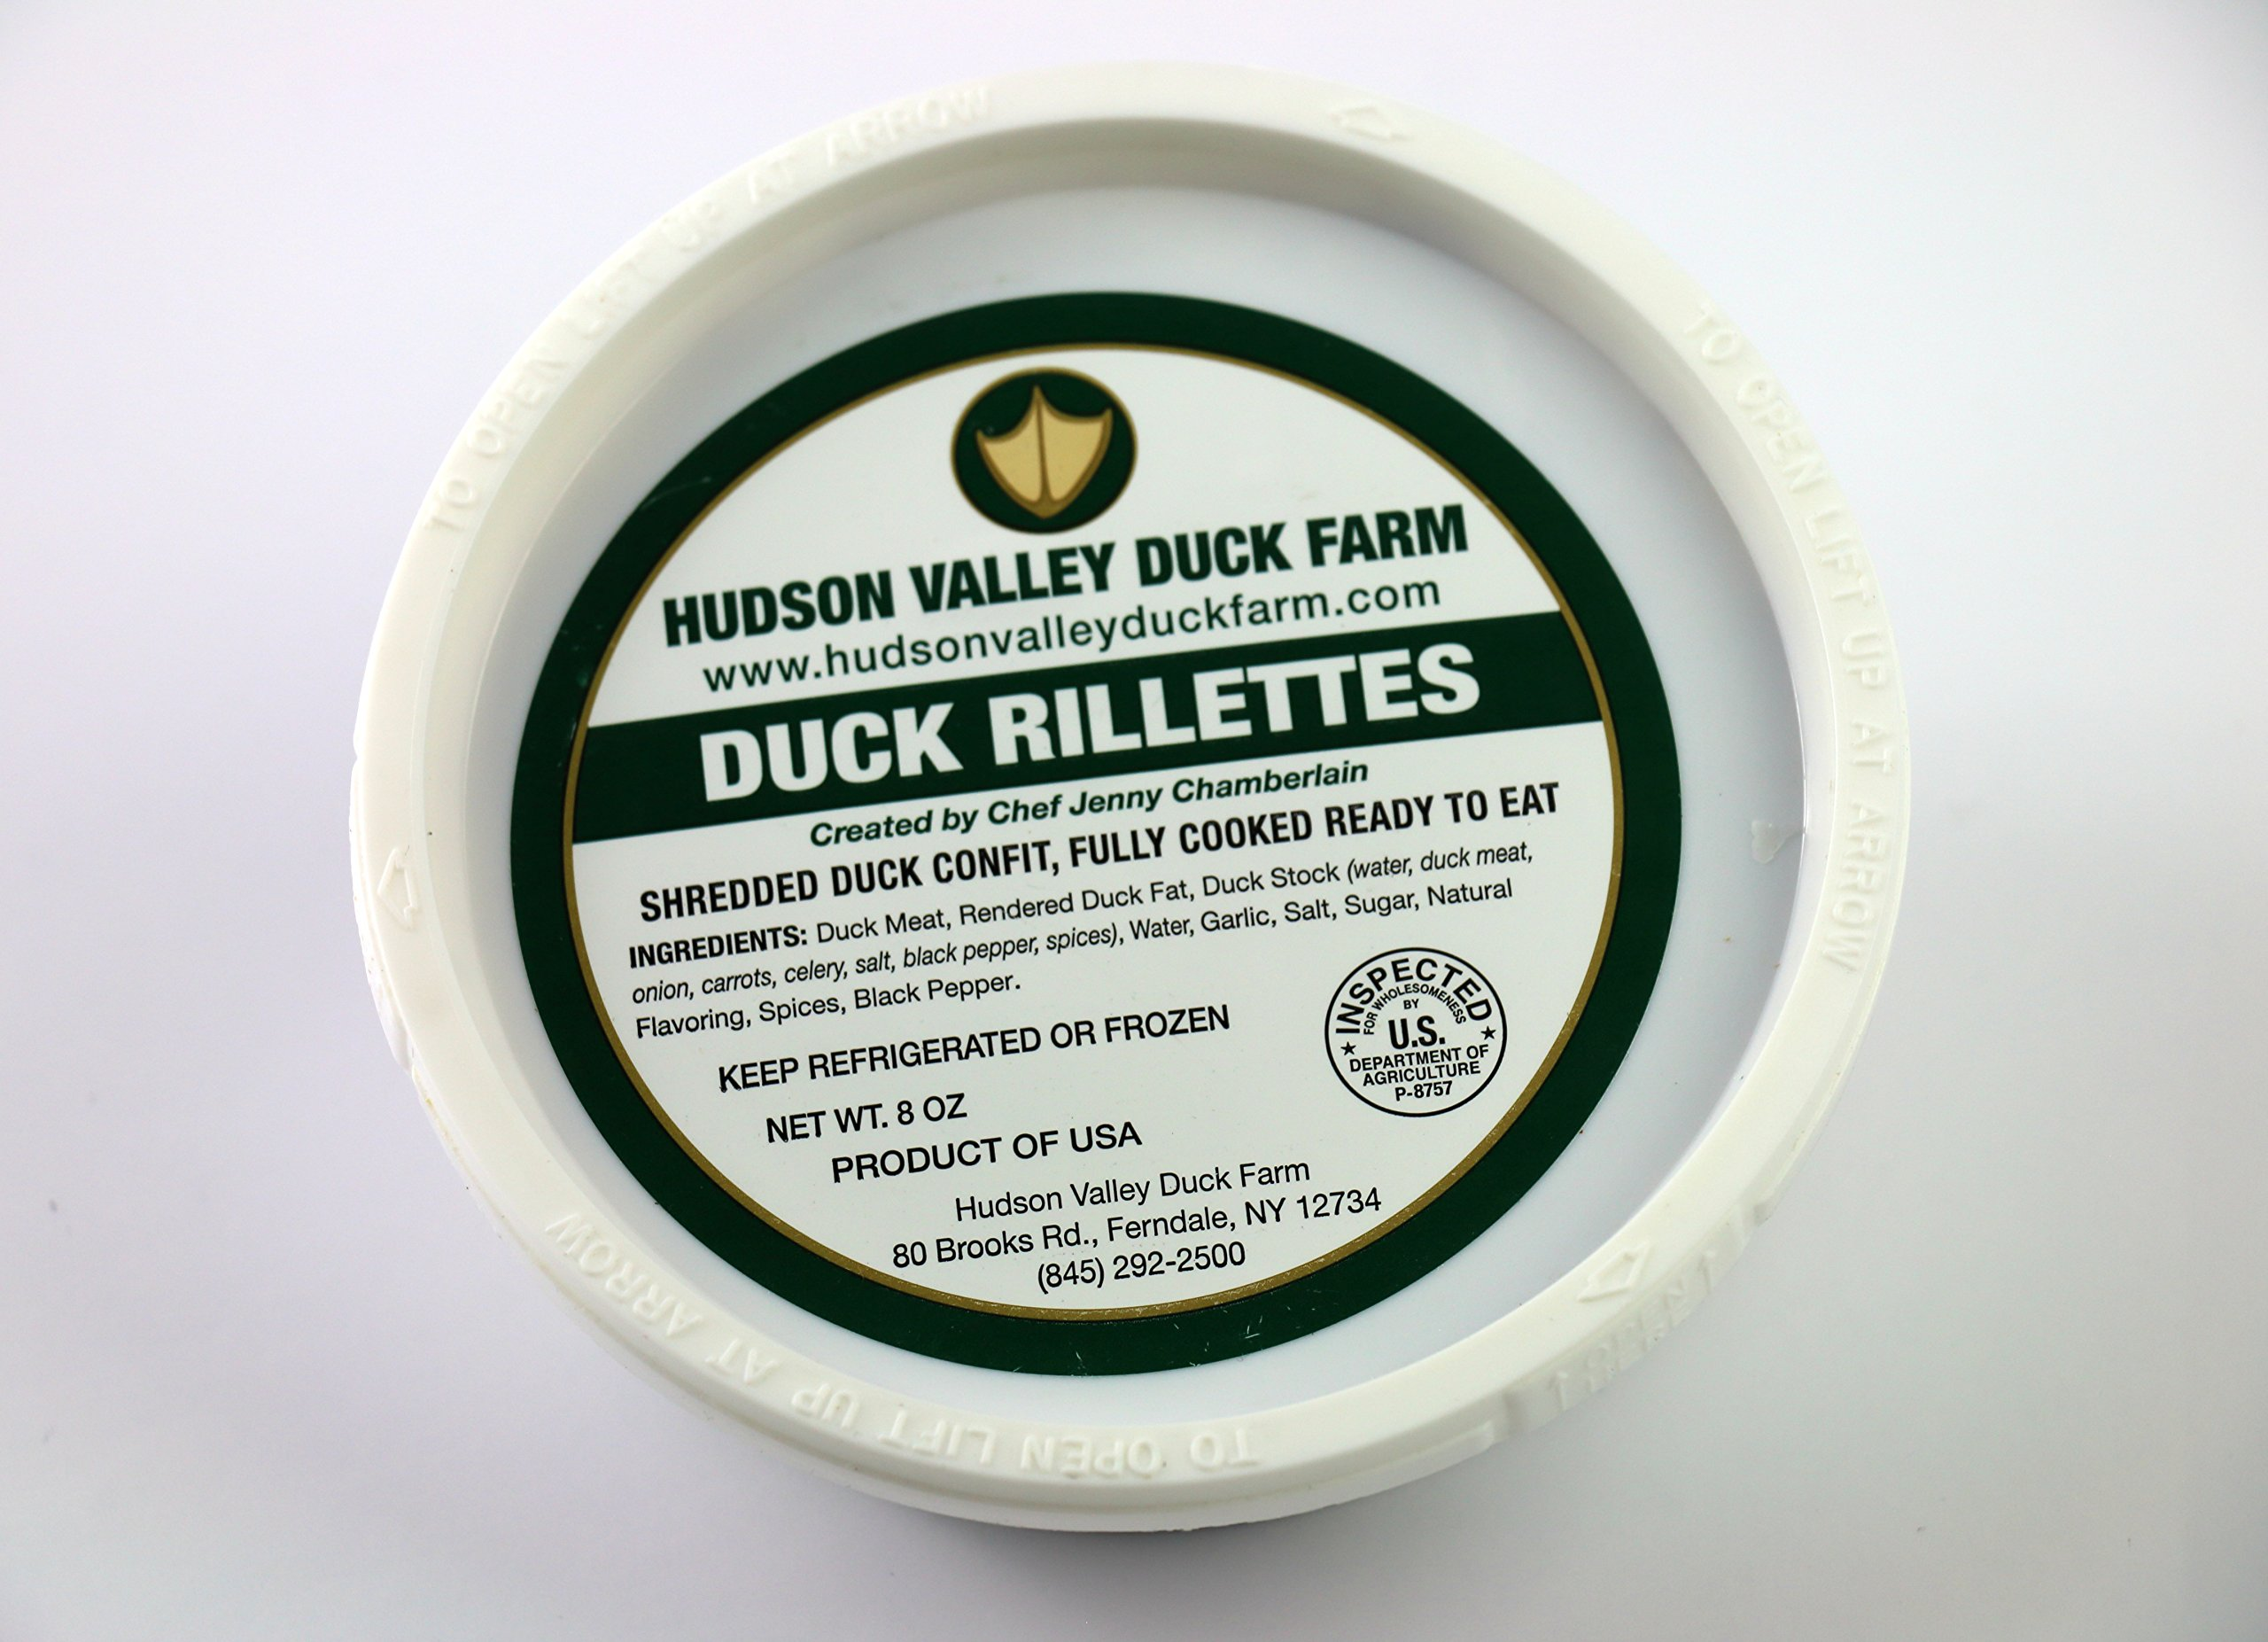 Hudson Valley Duck Farm 'Farm to Table' Duck Rillettes - 1.5 lbs (3 one half pound individual packages)